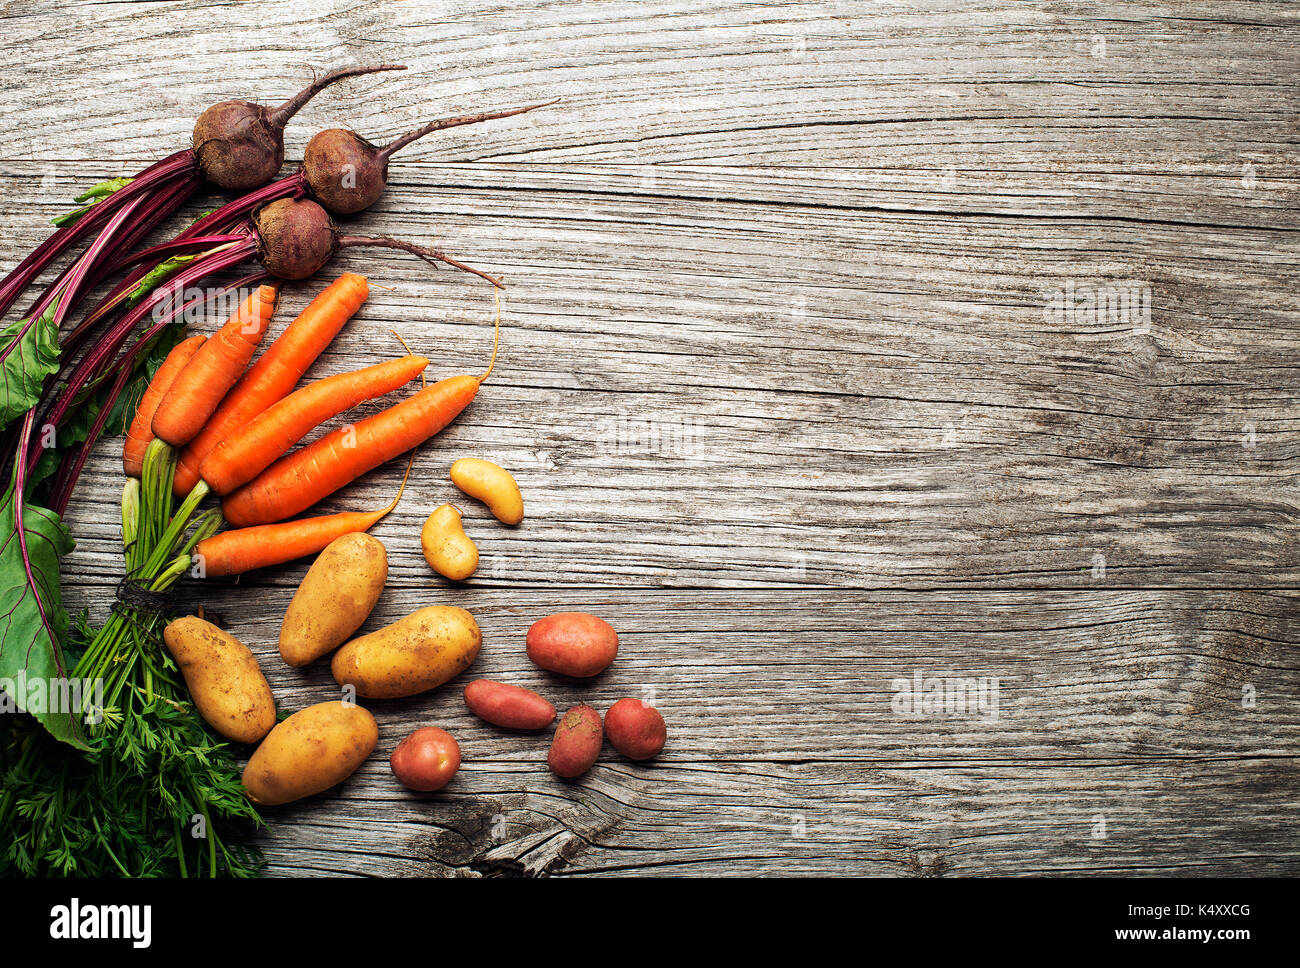 Various fresh vegetables and ingredients on wooden rustic background Stock Photo